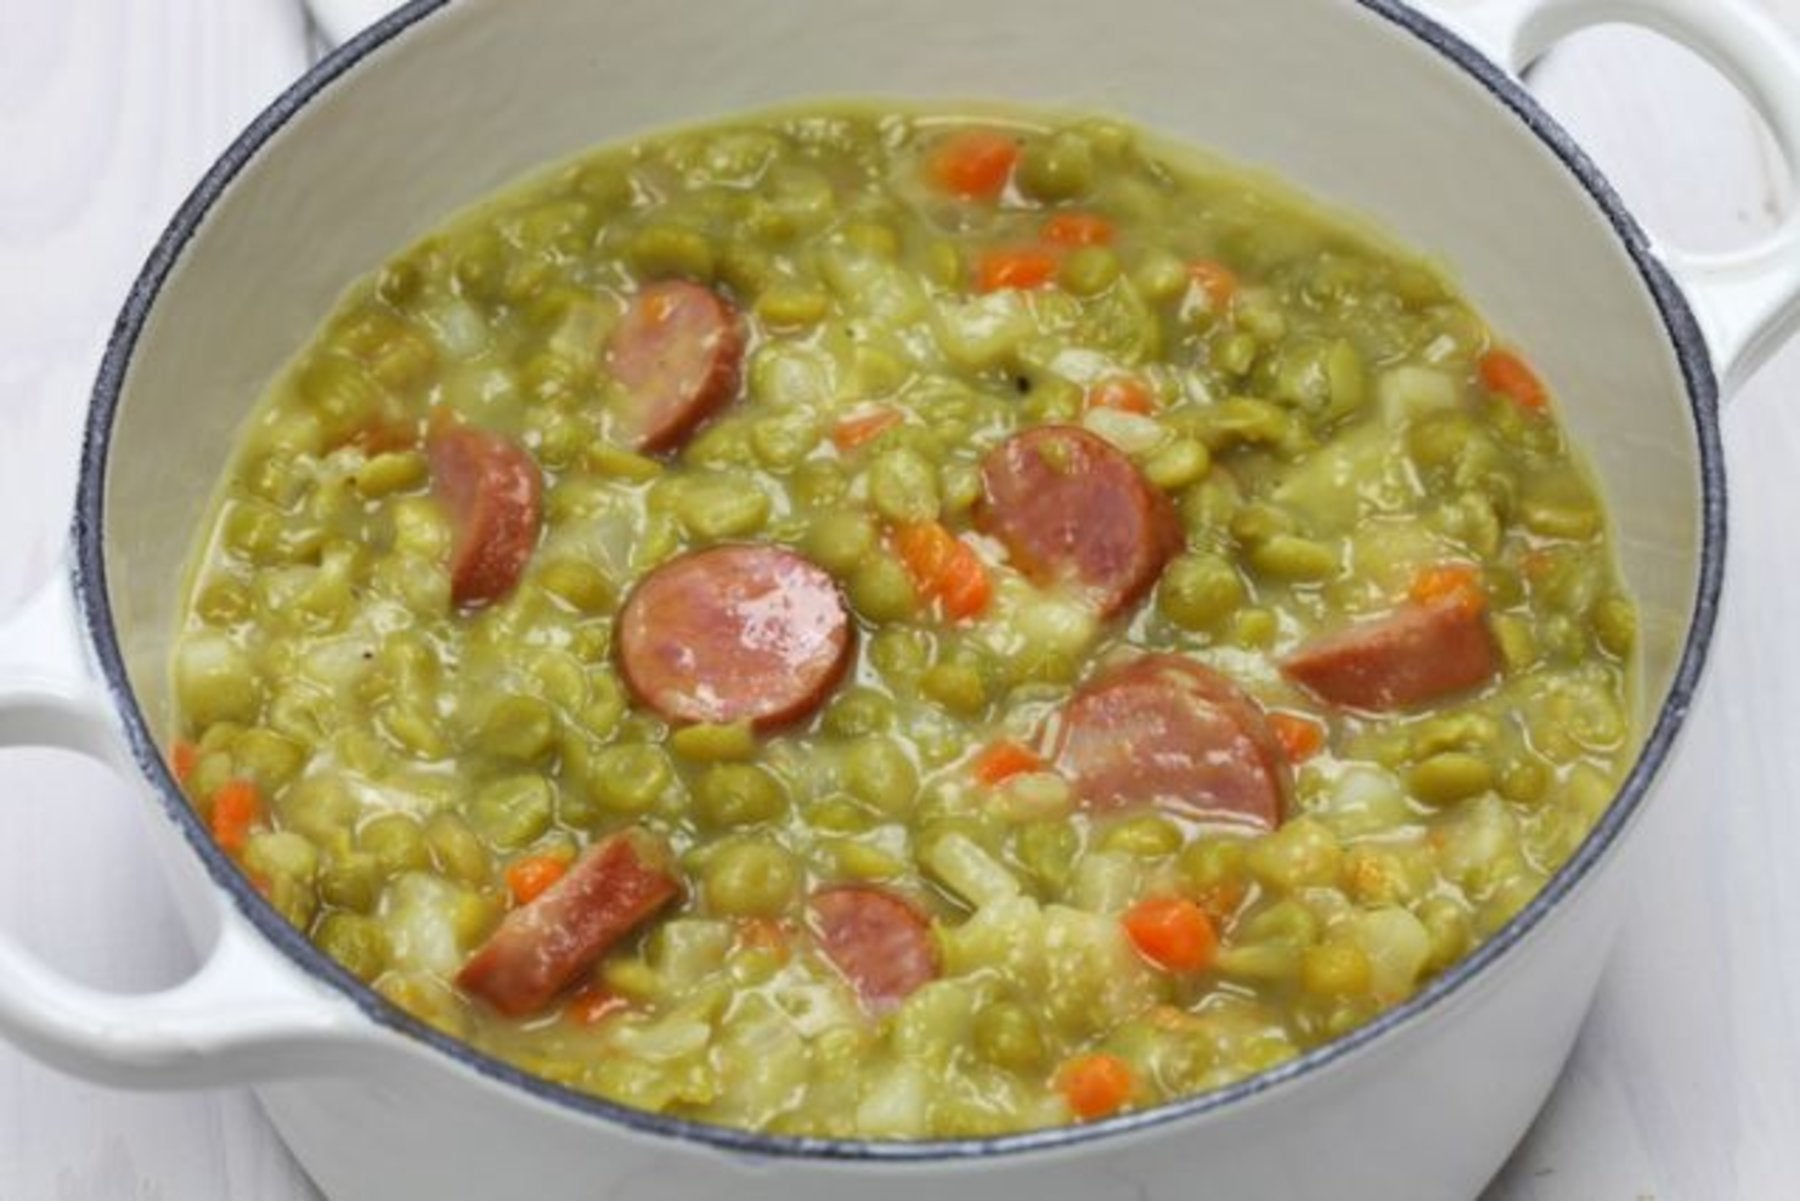 typical dutch food is erwtensoep (pea soup) or snert